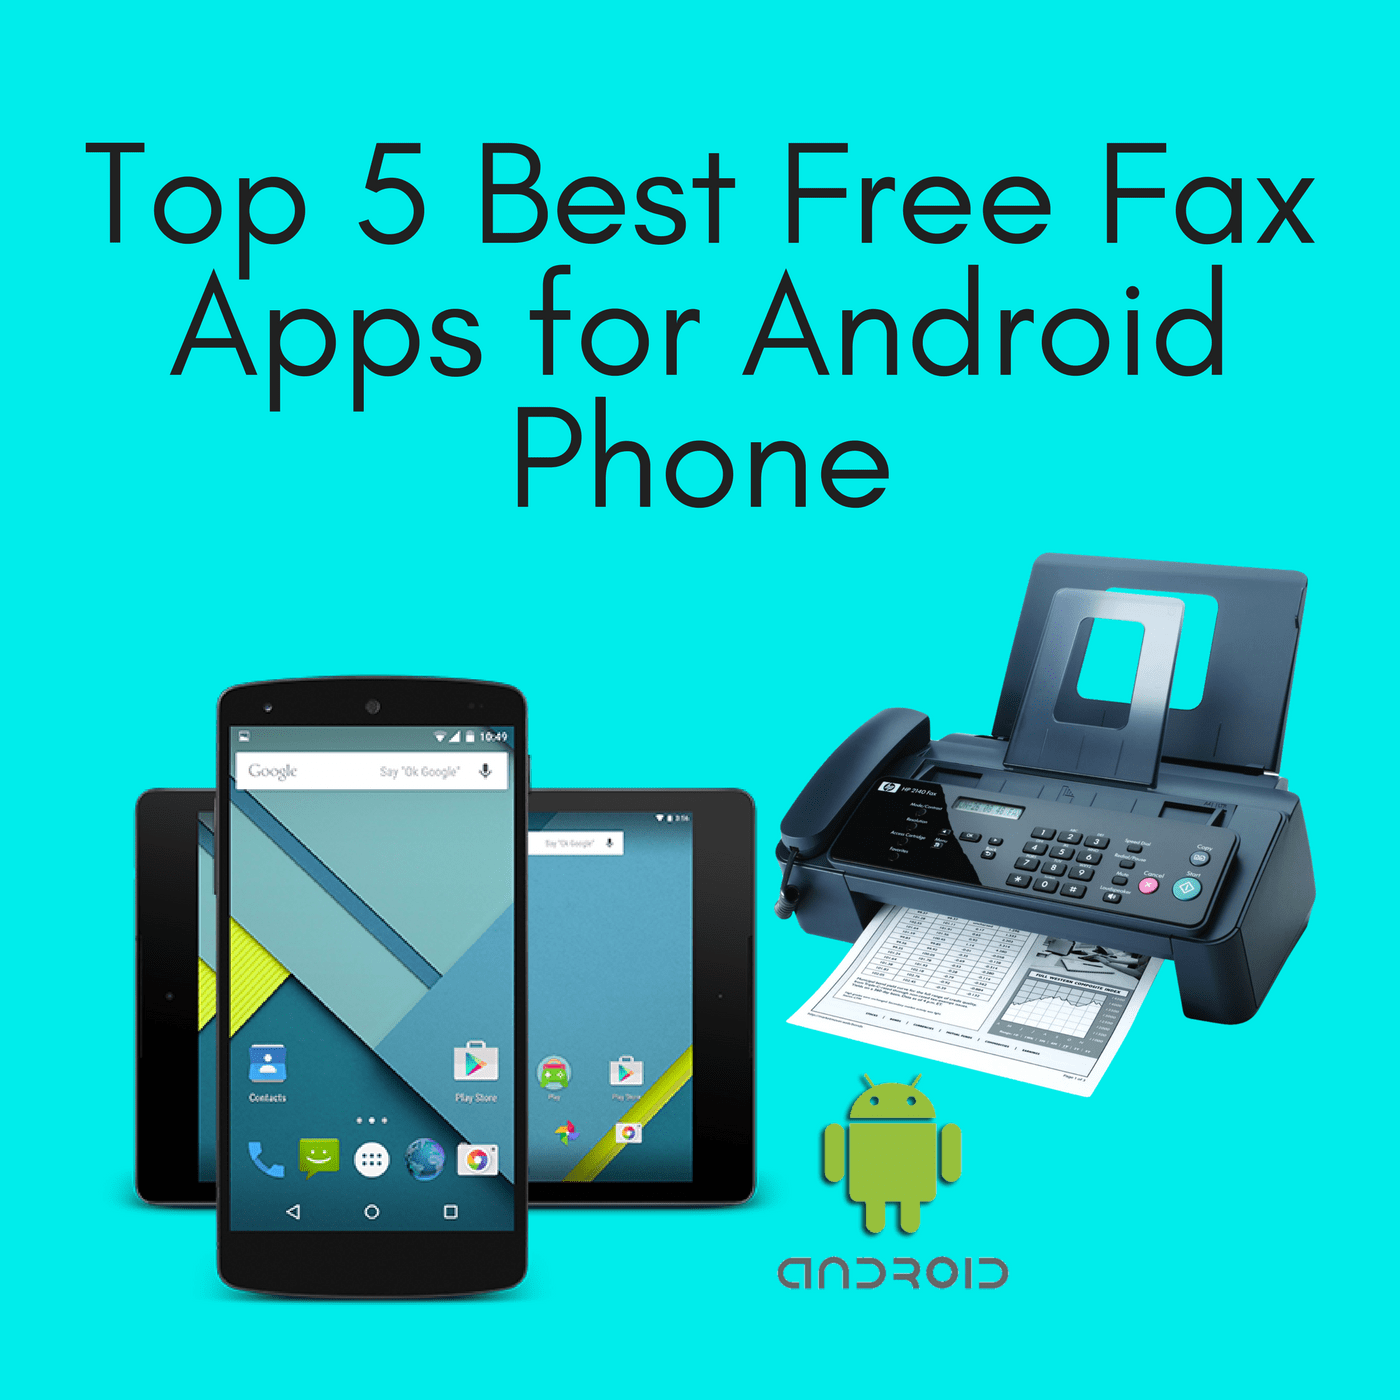 top 5 best free fax apps for android phone google fax free